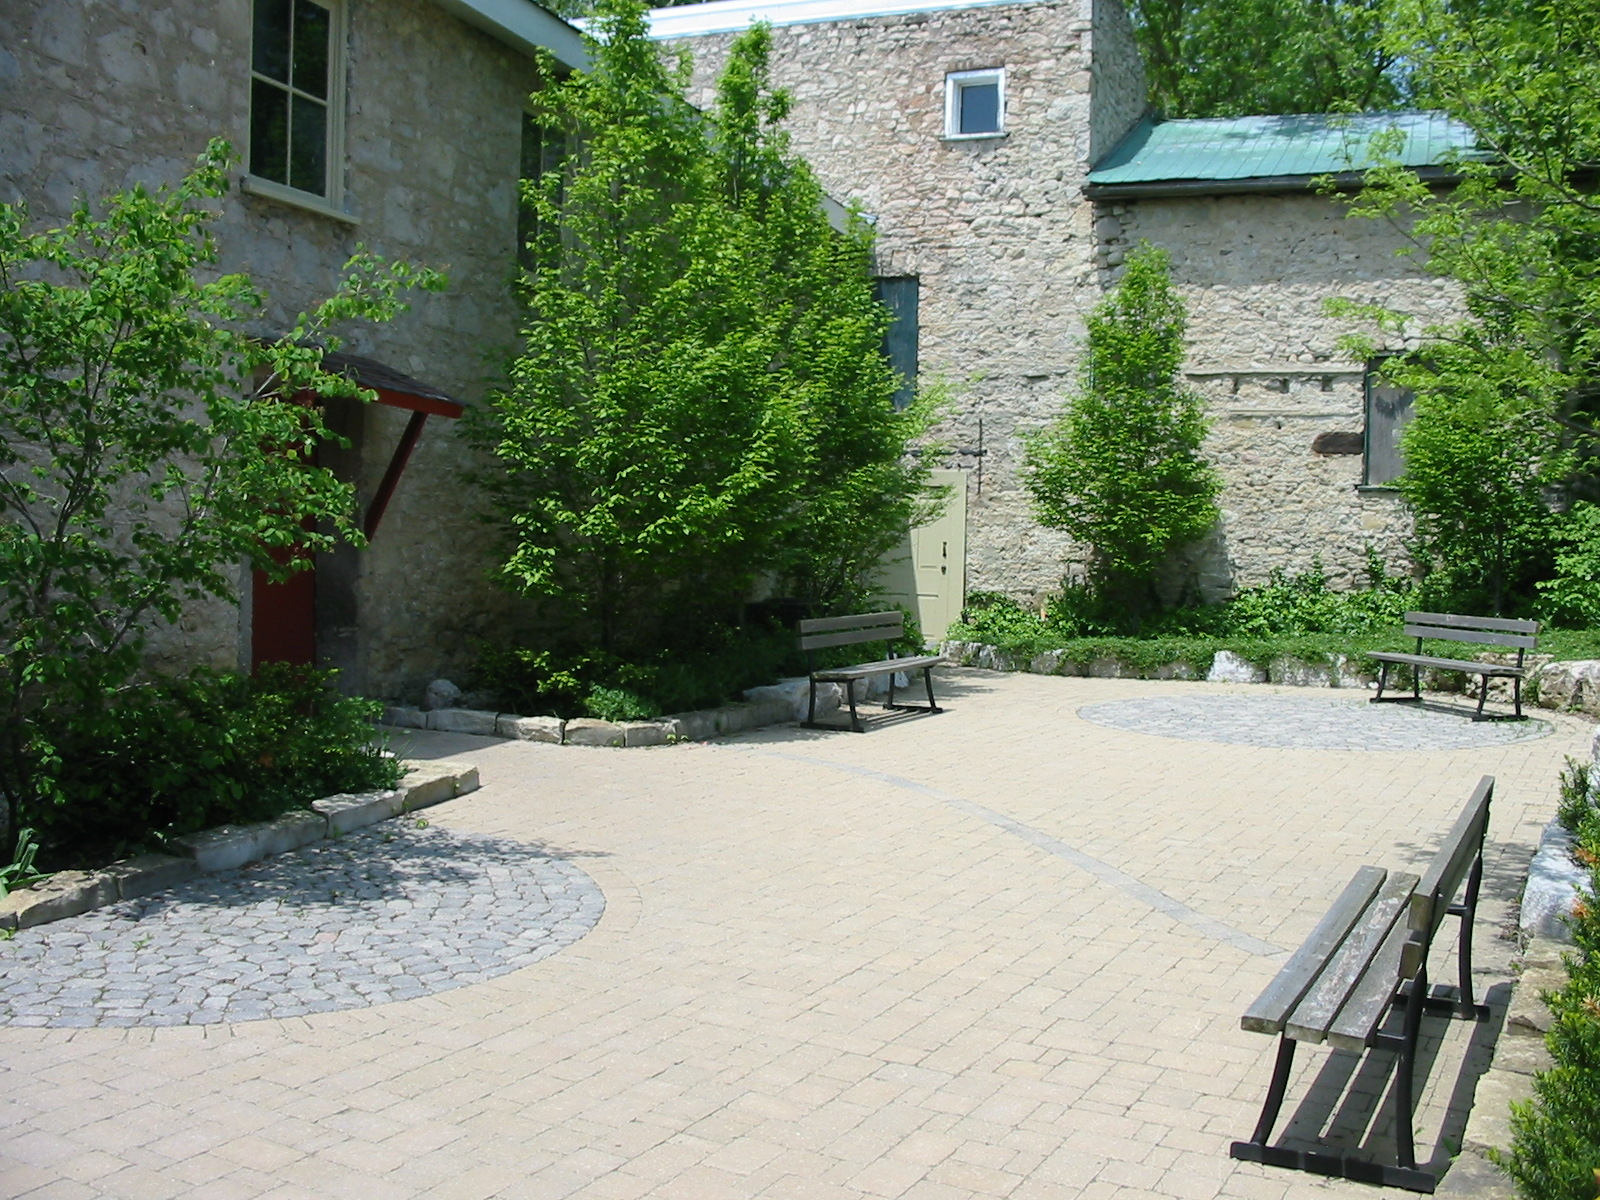 The new courtyard interior.